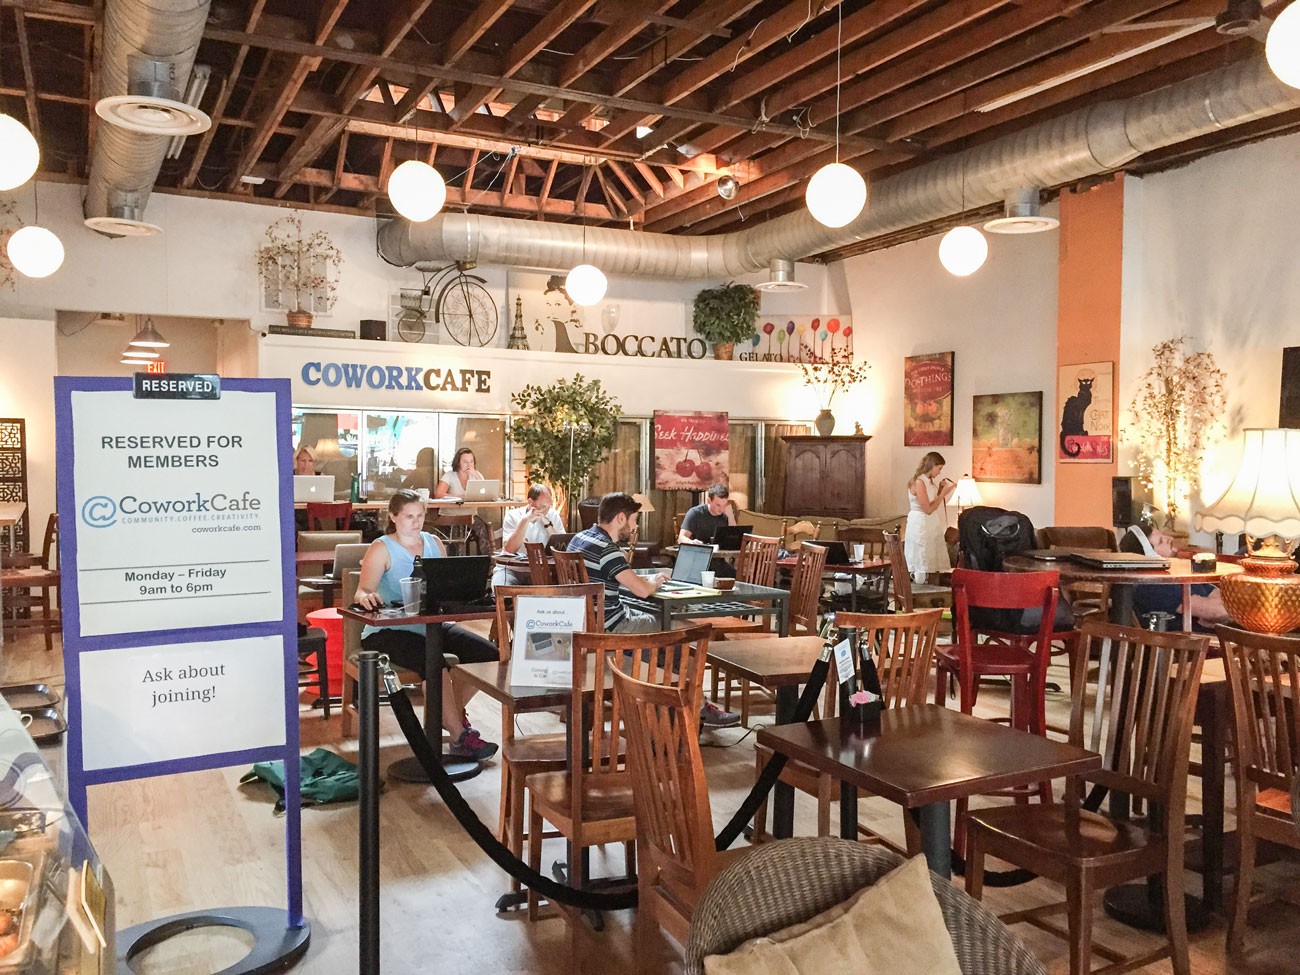 CoWorkCafé is based in Arlington, Virginia, and shares room with another coffee shop. (Photo: courtesy CoWorkCafé.)